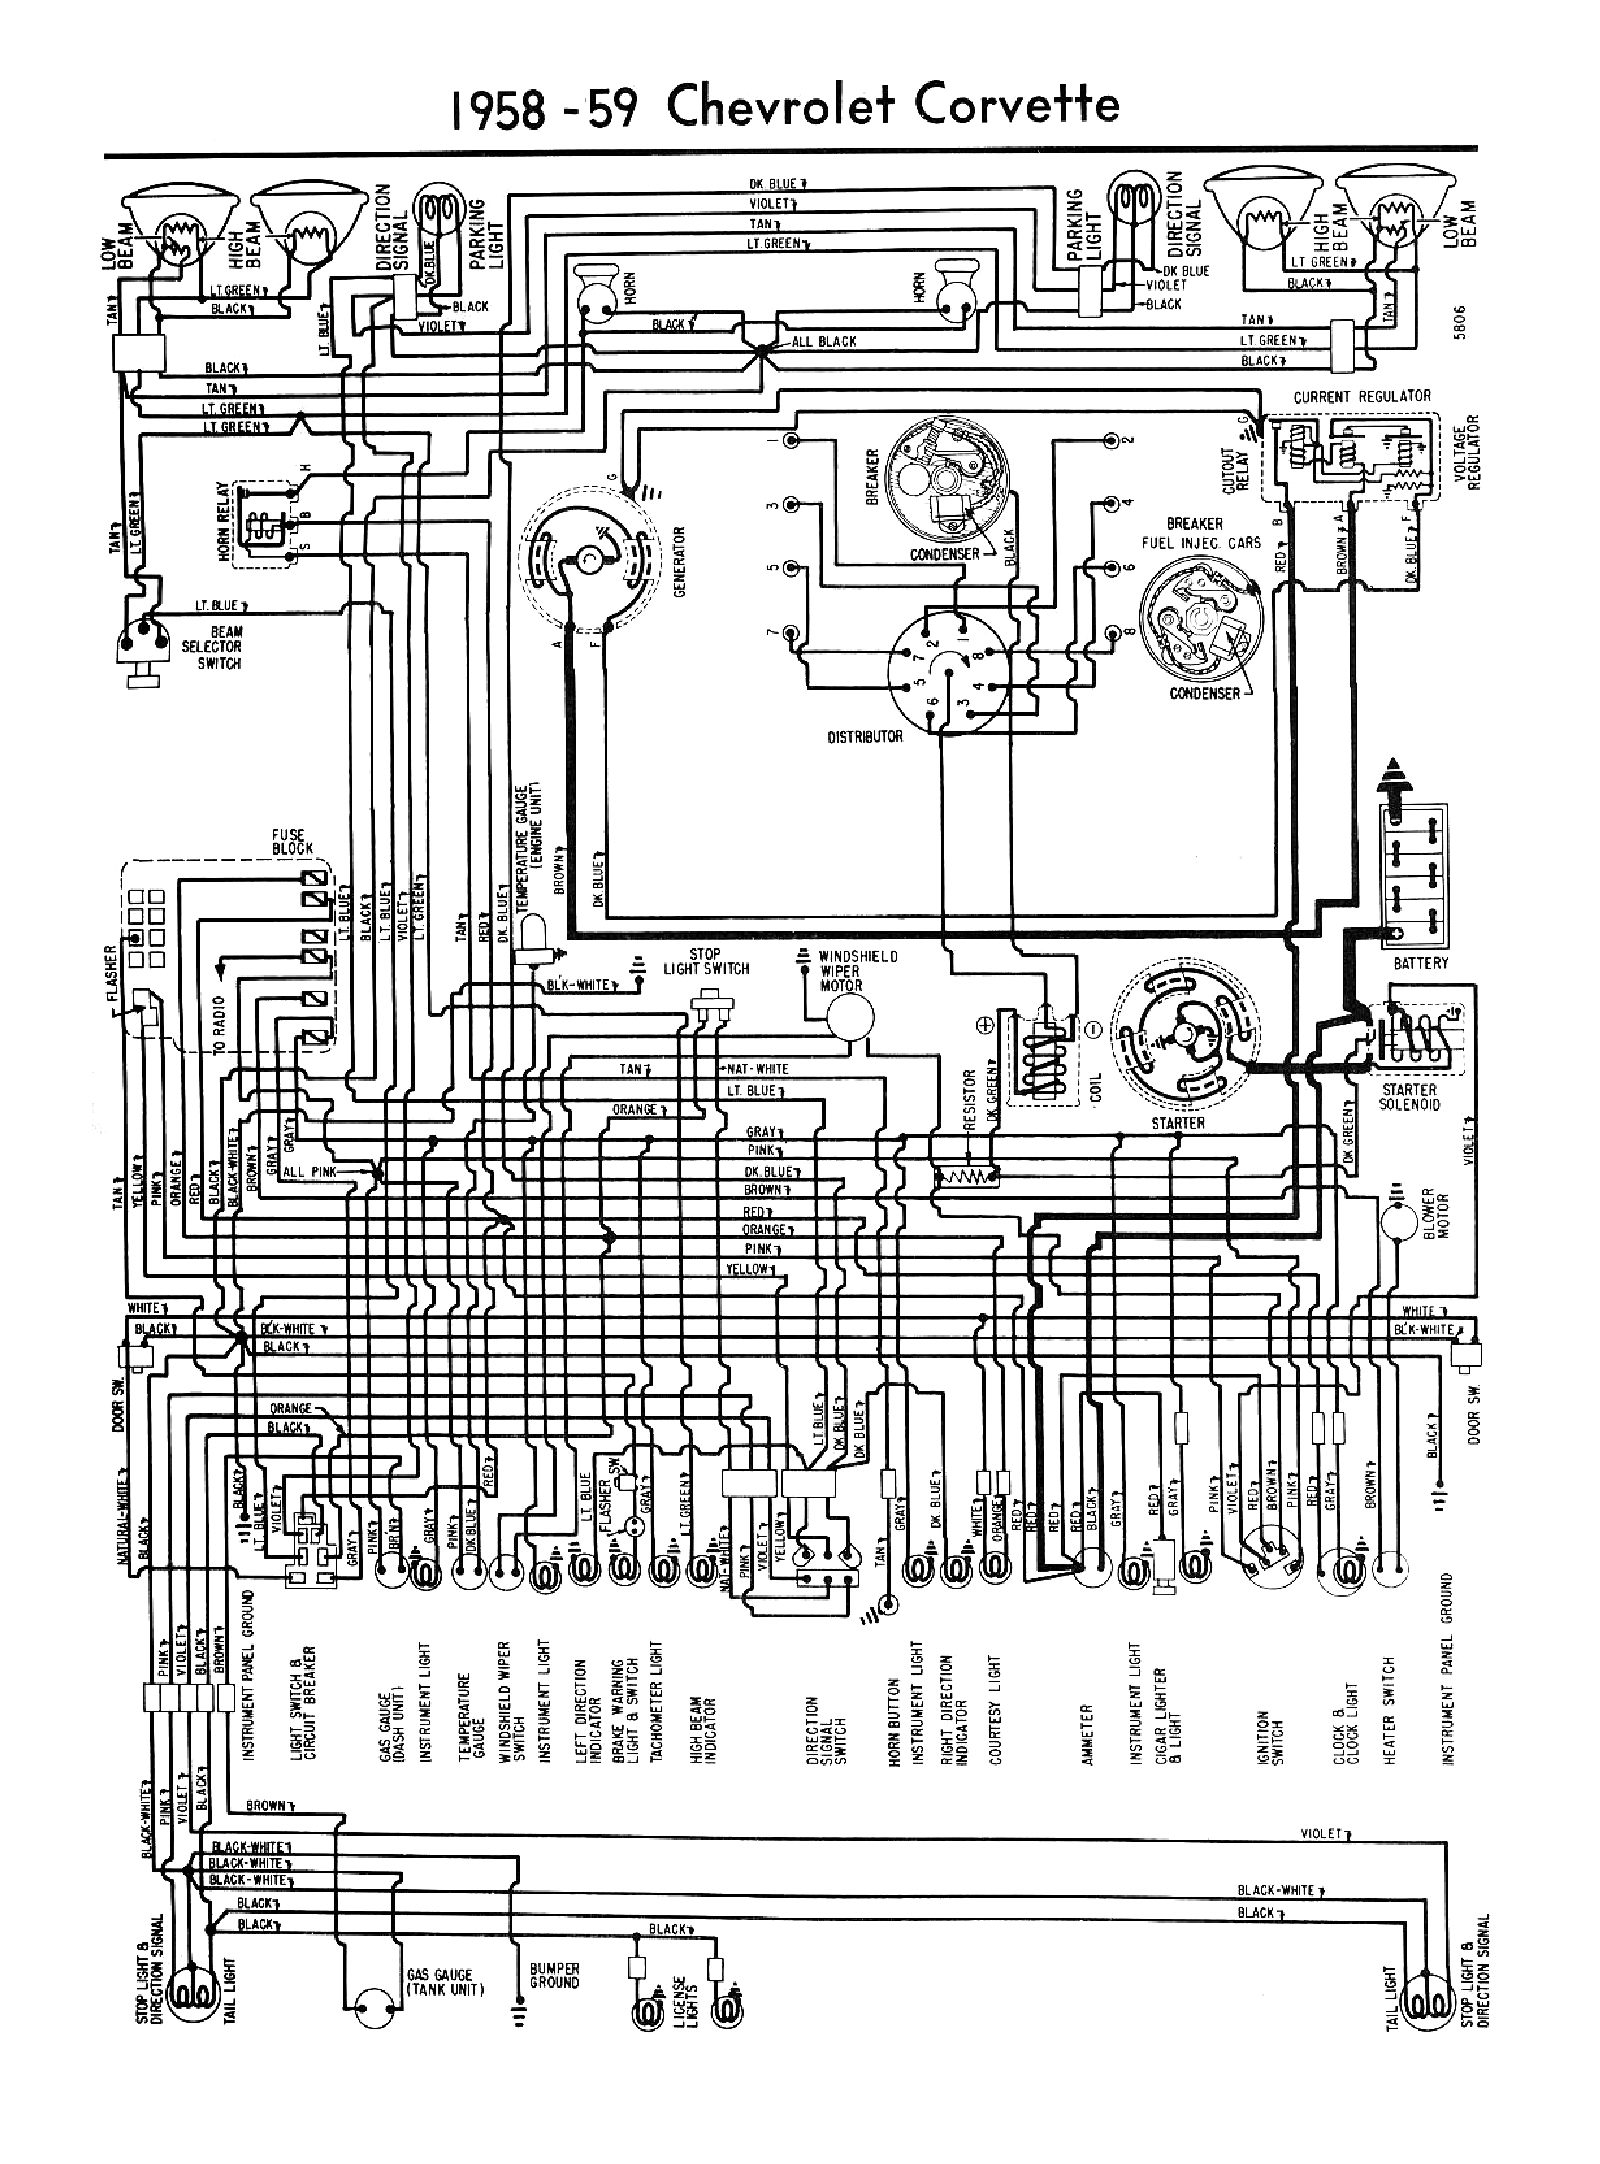 1958 Corvette Headlight Wiring Diagram Library Kenworth Diagrams 1979